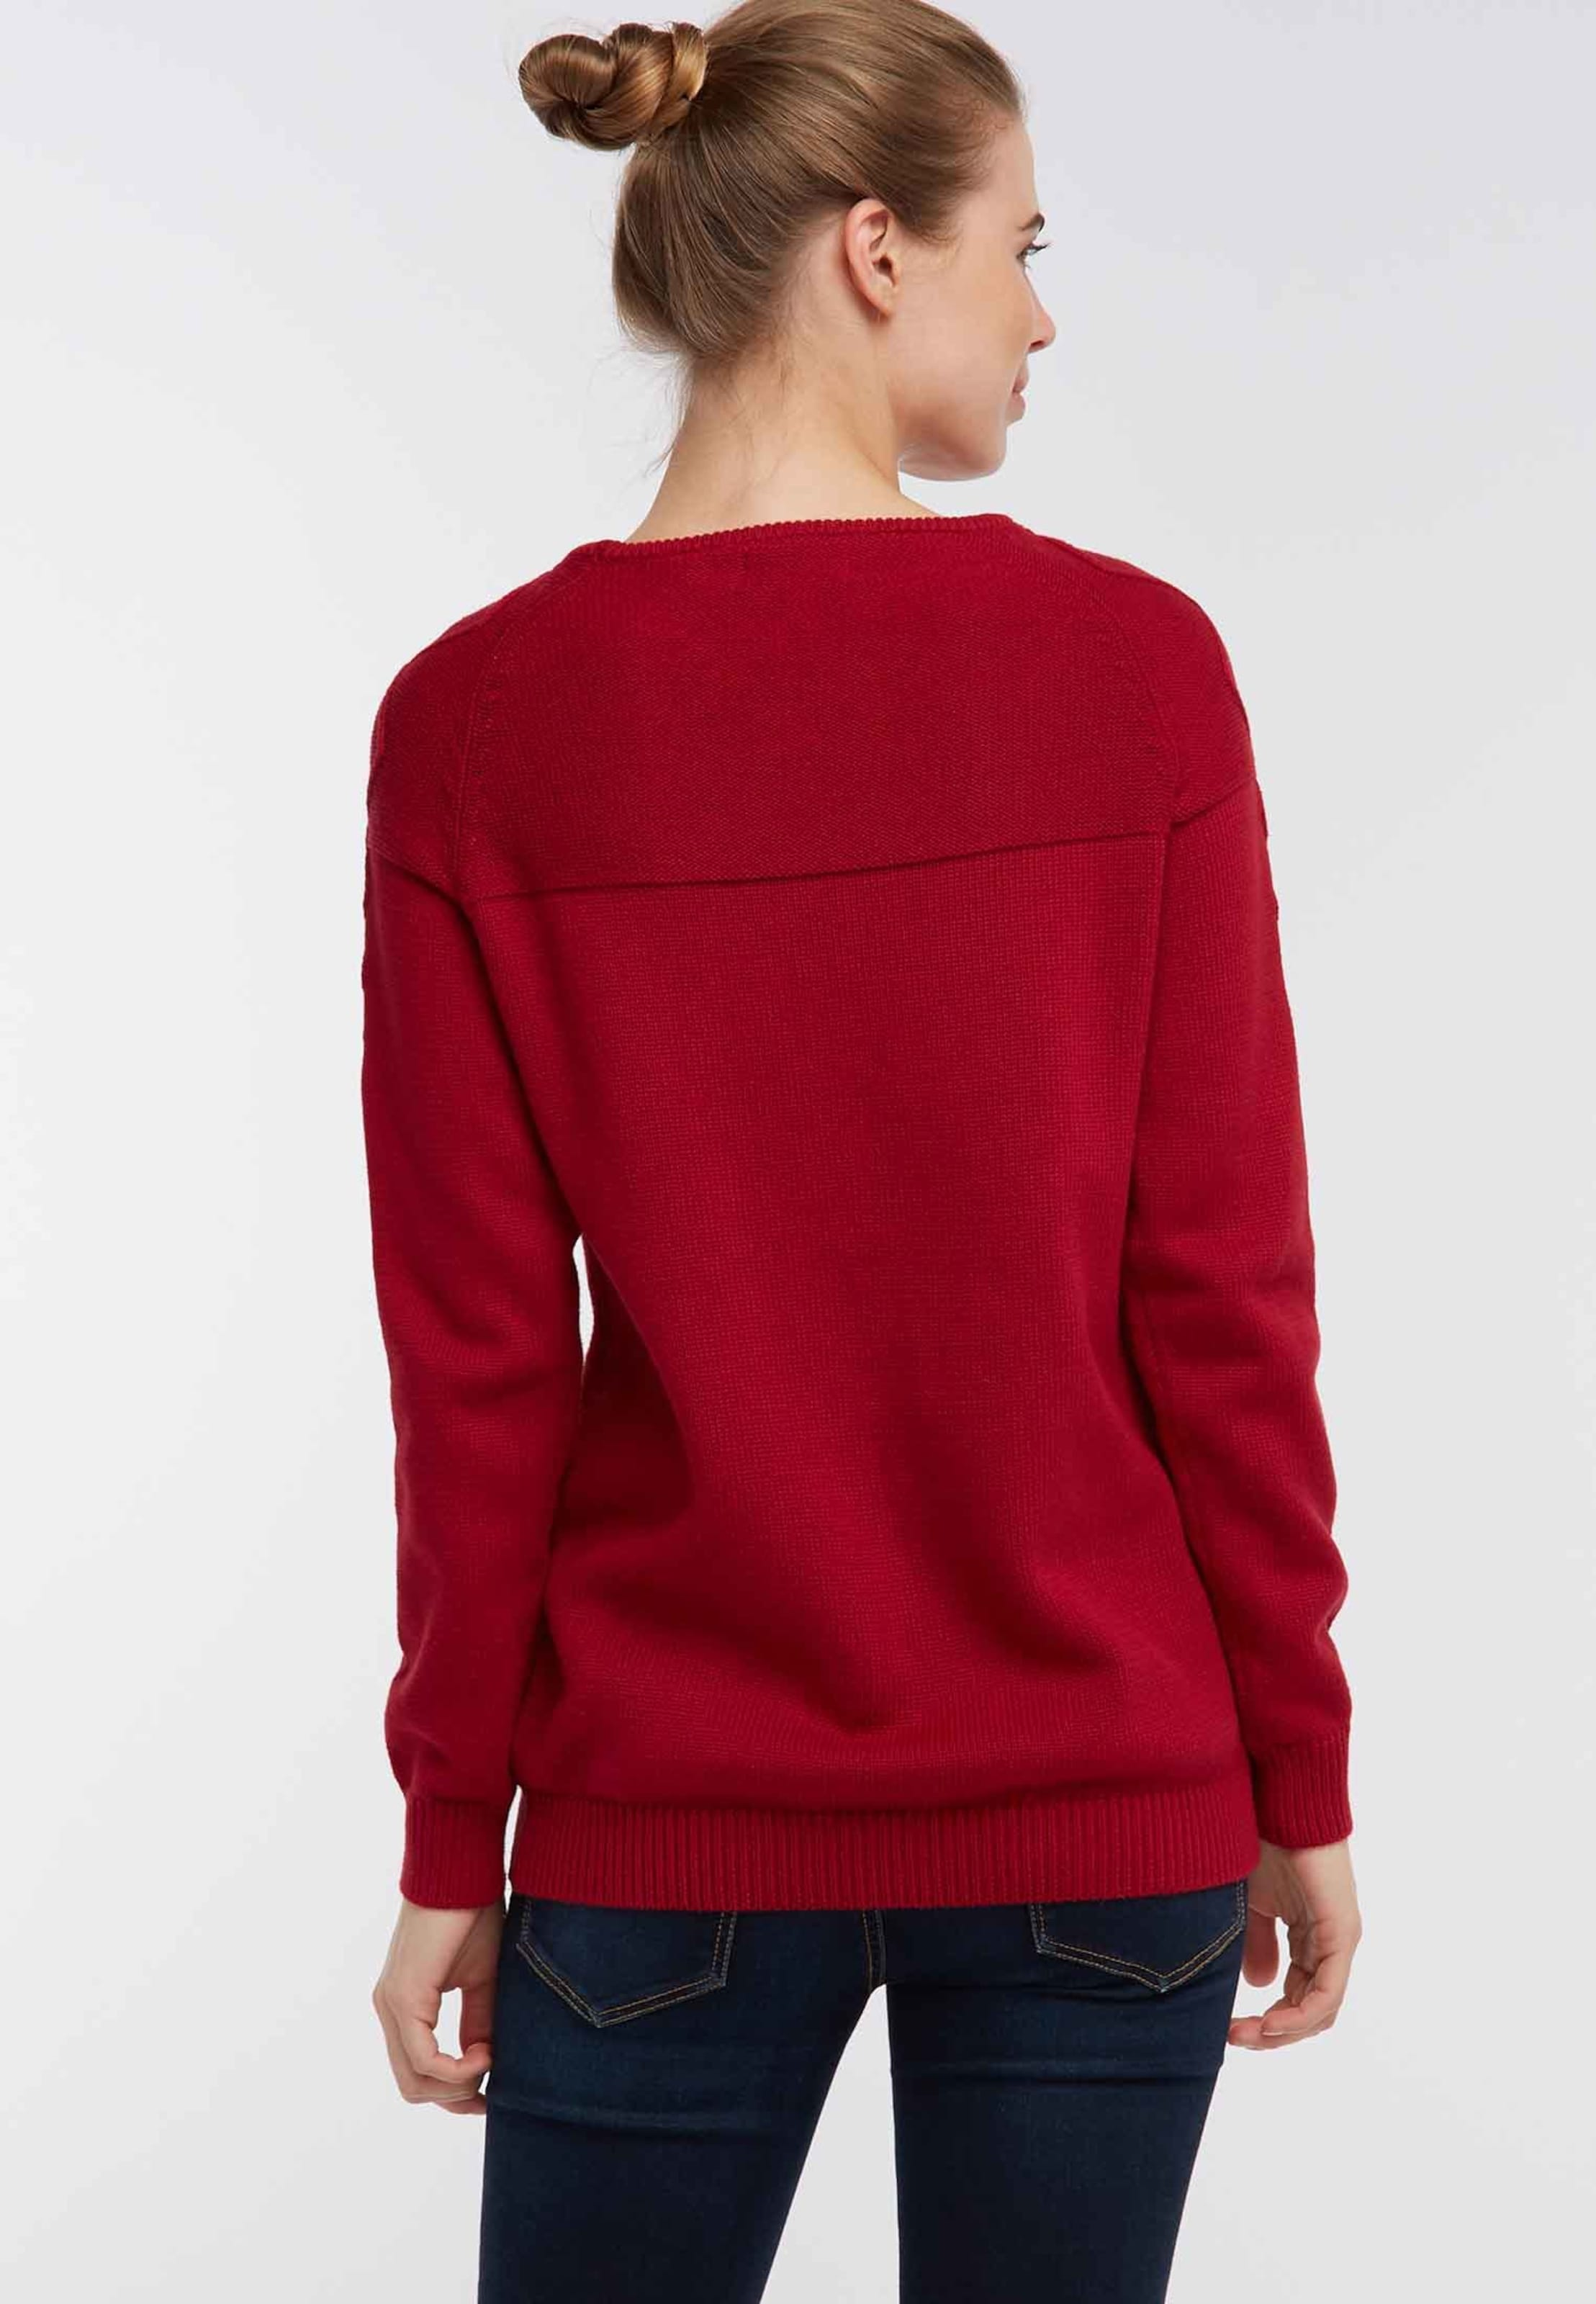 Rot Dreimaster Pullover Rot Pullover In In Dreimaster Dreimaster In Pullover 67gyYfvmIb